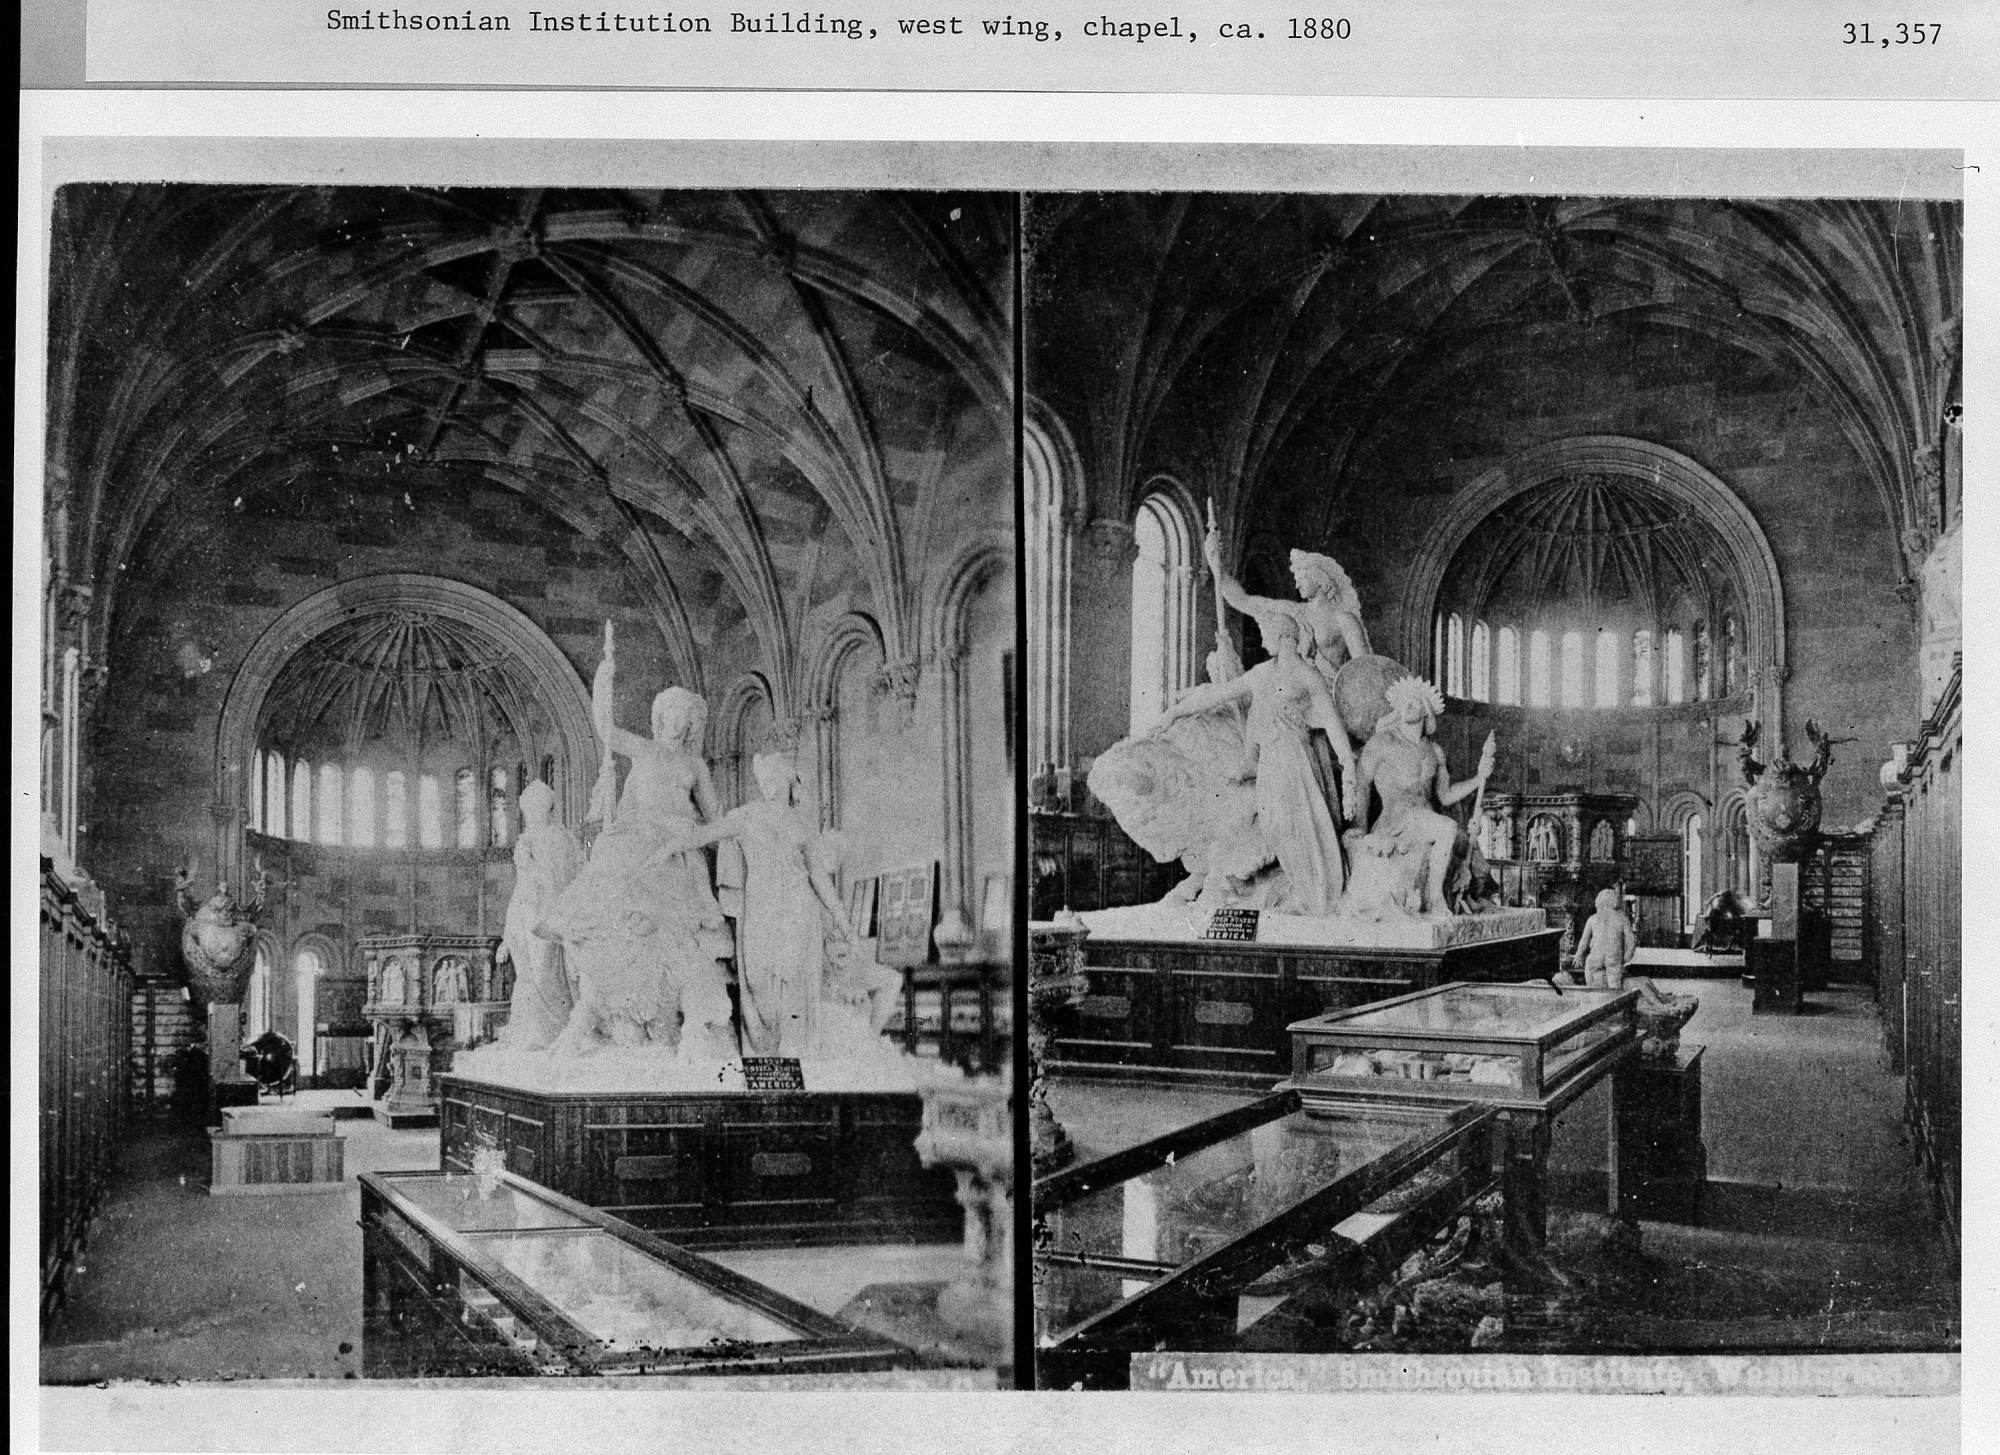 Exhibit in West Wing of Smithsonian Institution Building, c. 1880